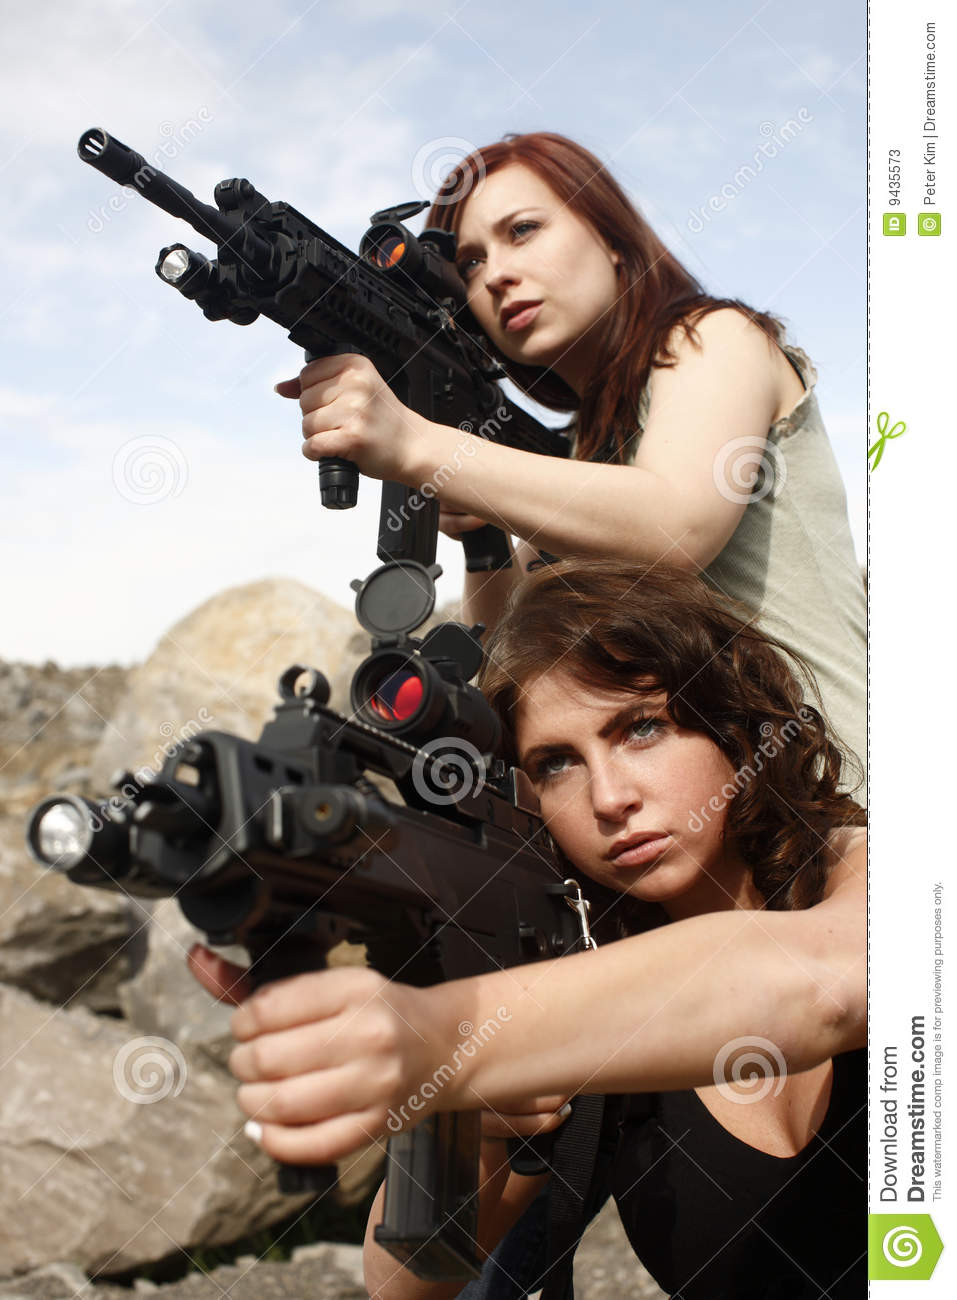 Women With Guns Stock Image Image Of Young Portrait 9435573